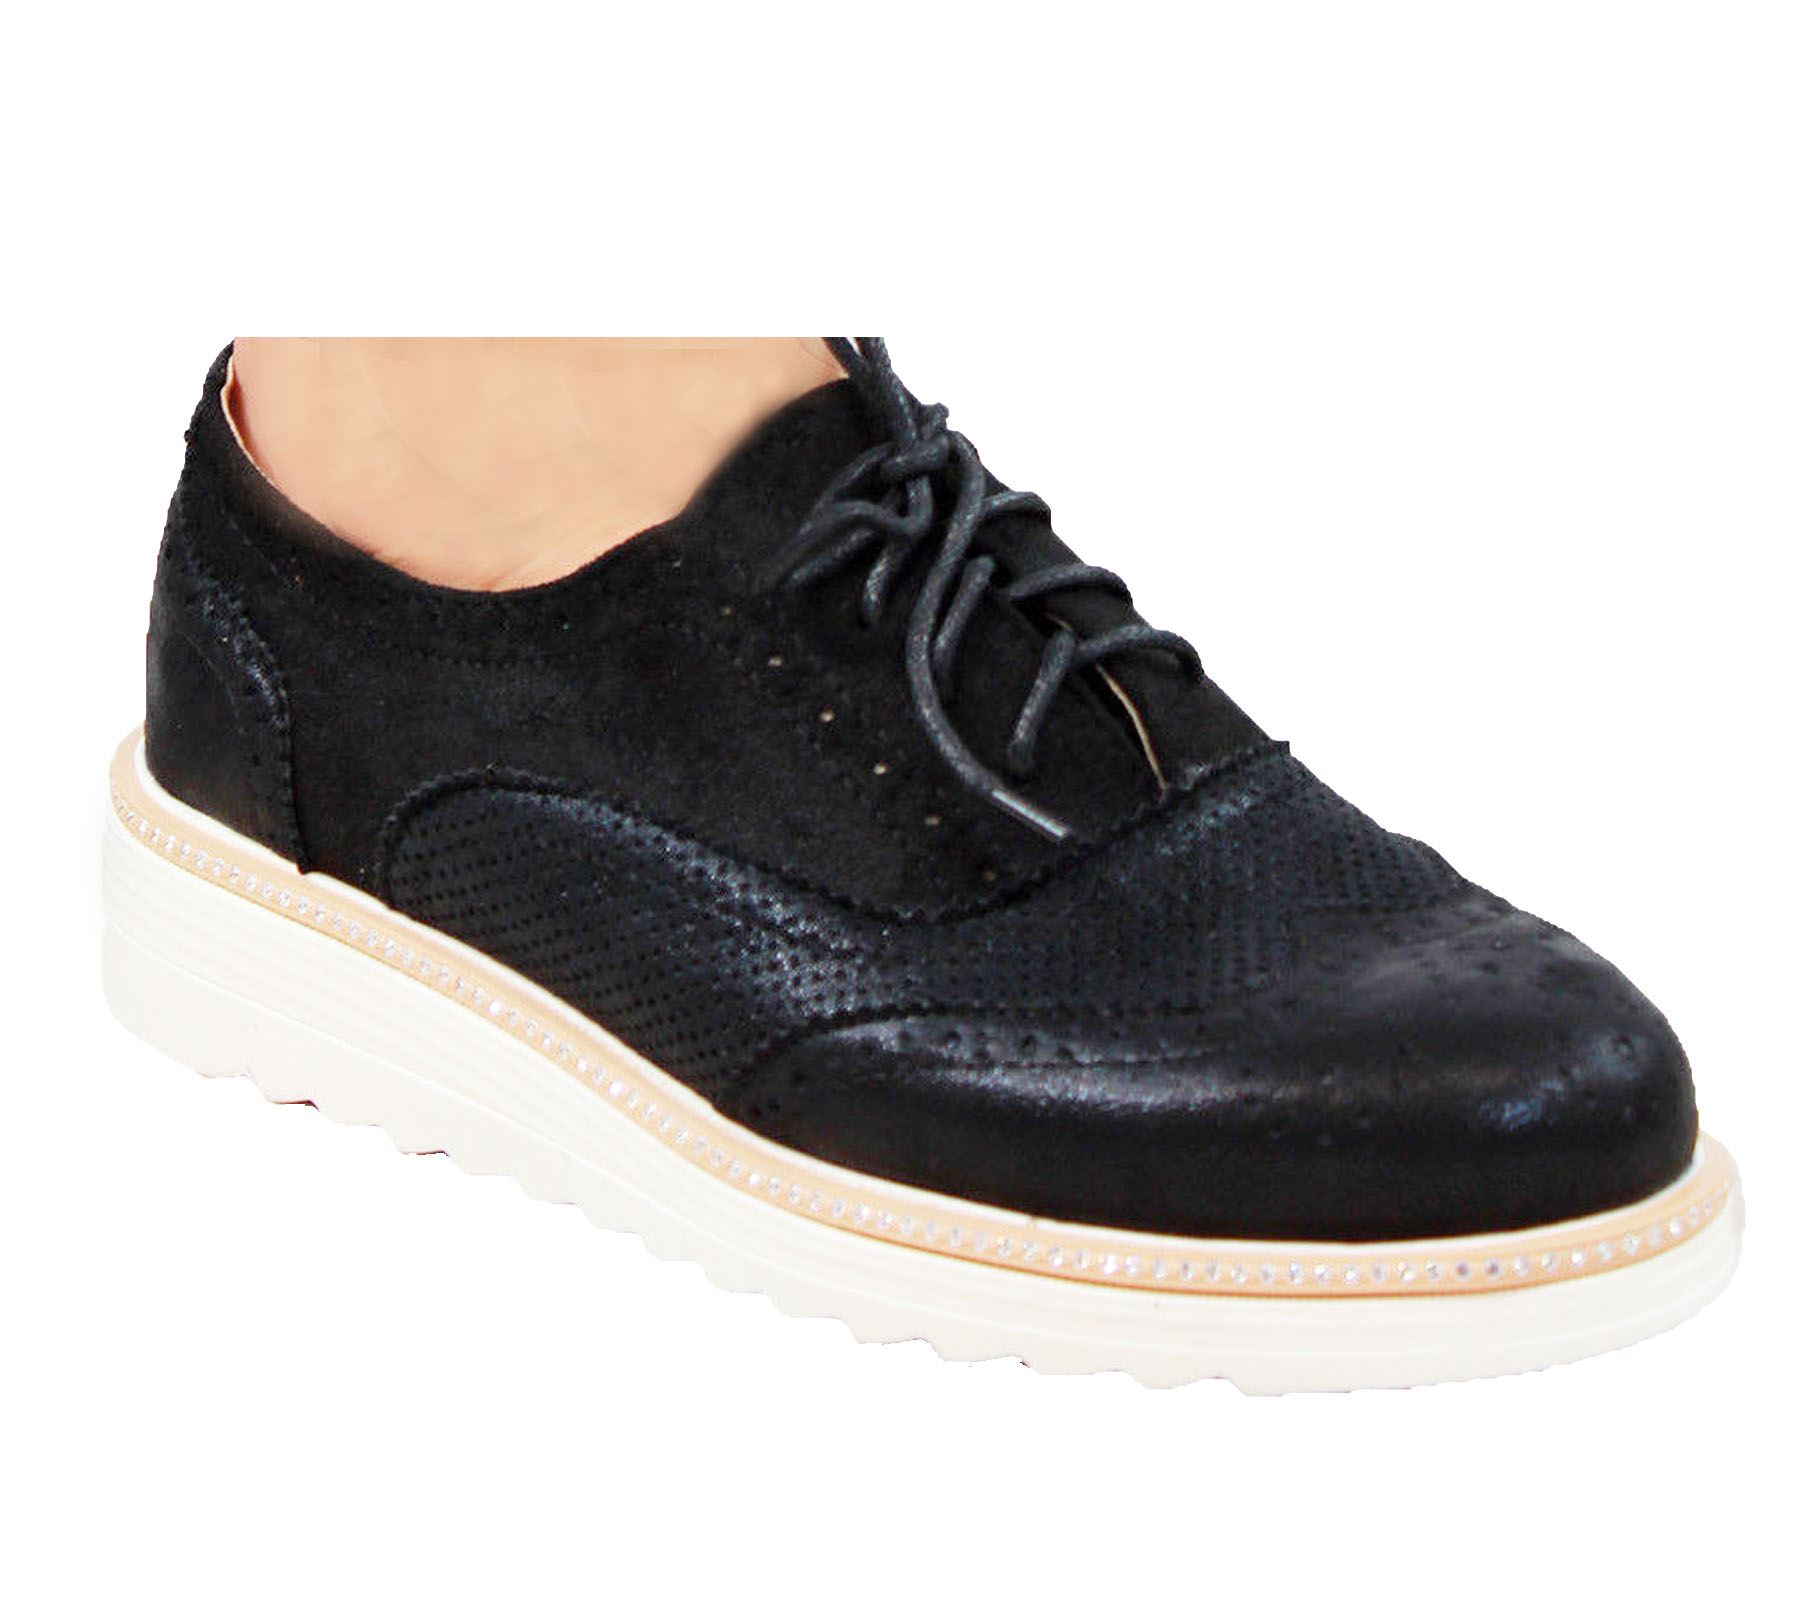 Ladies-Brogue-Lace-Up-Shoes-Womens-Oxford-Smart-Office-Loafers-Shoes miniatura 13